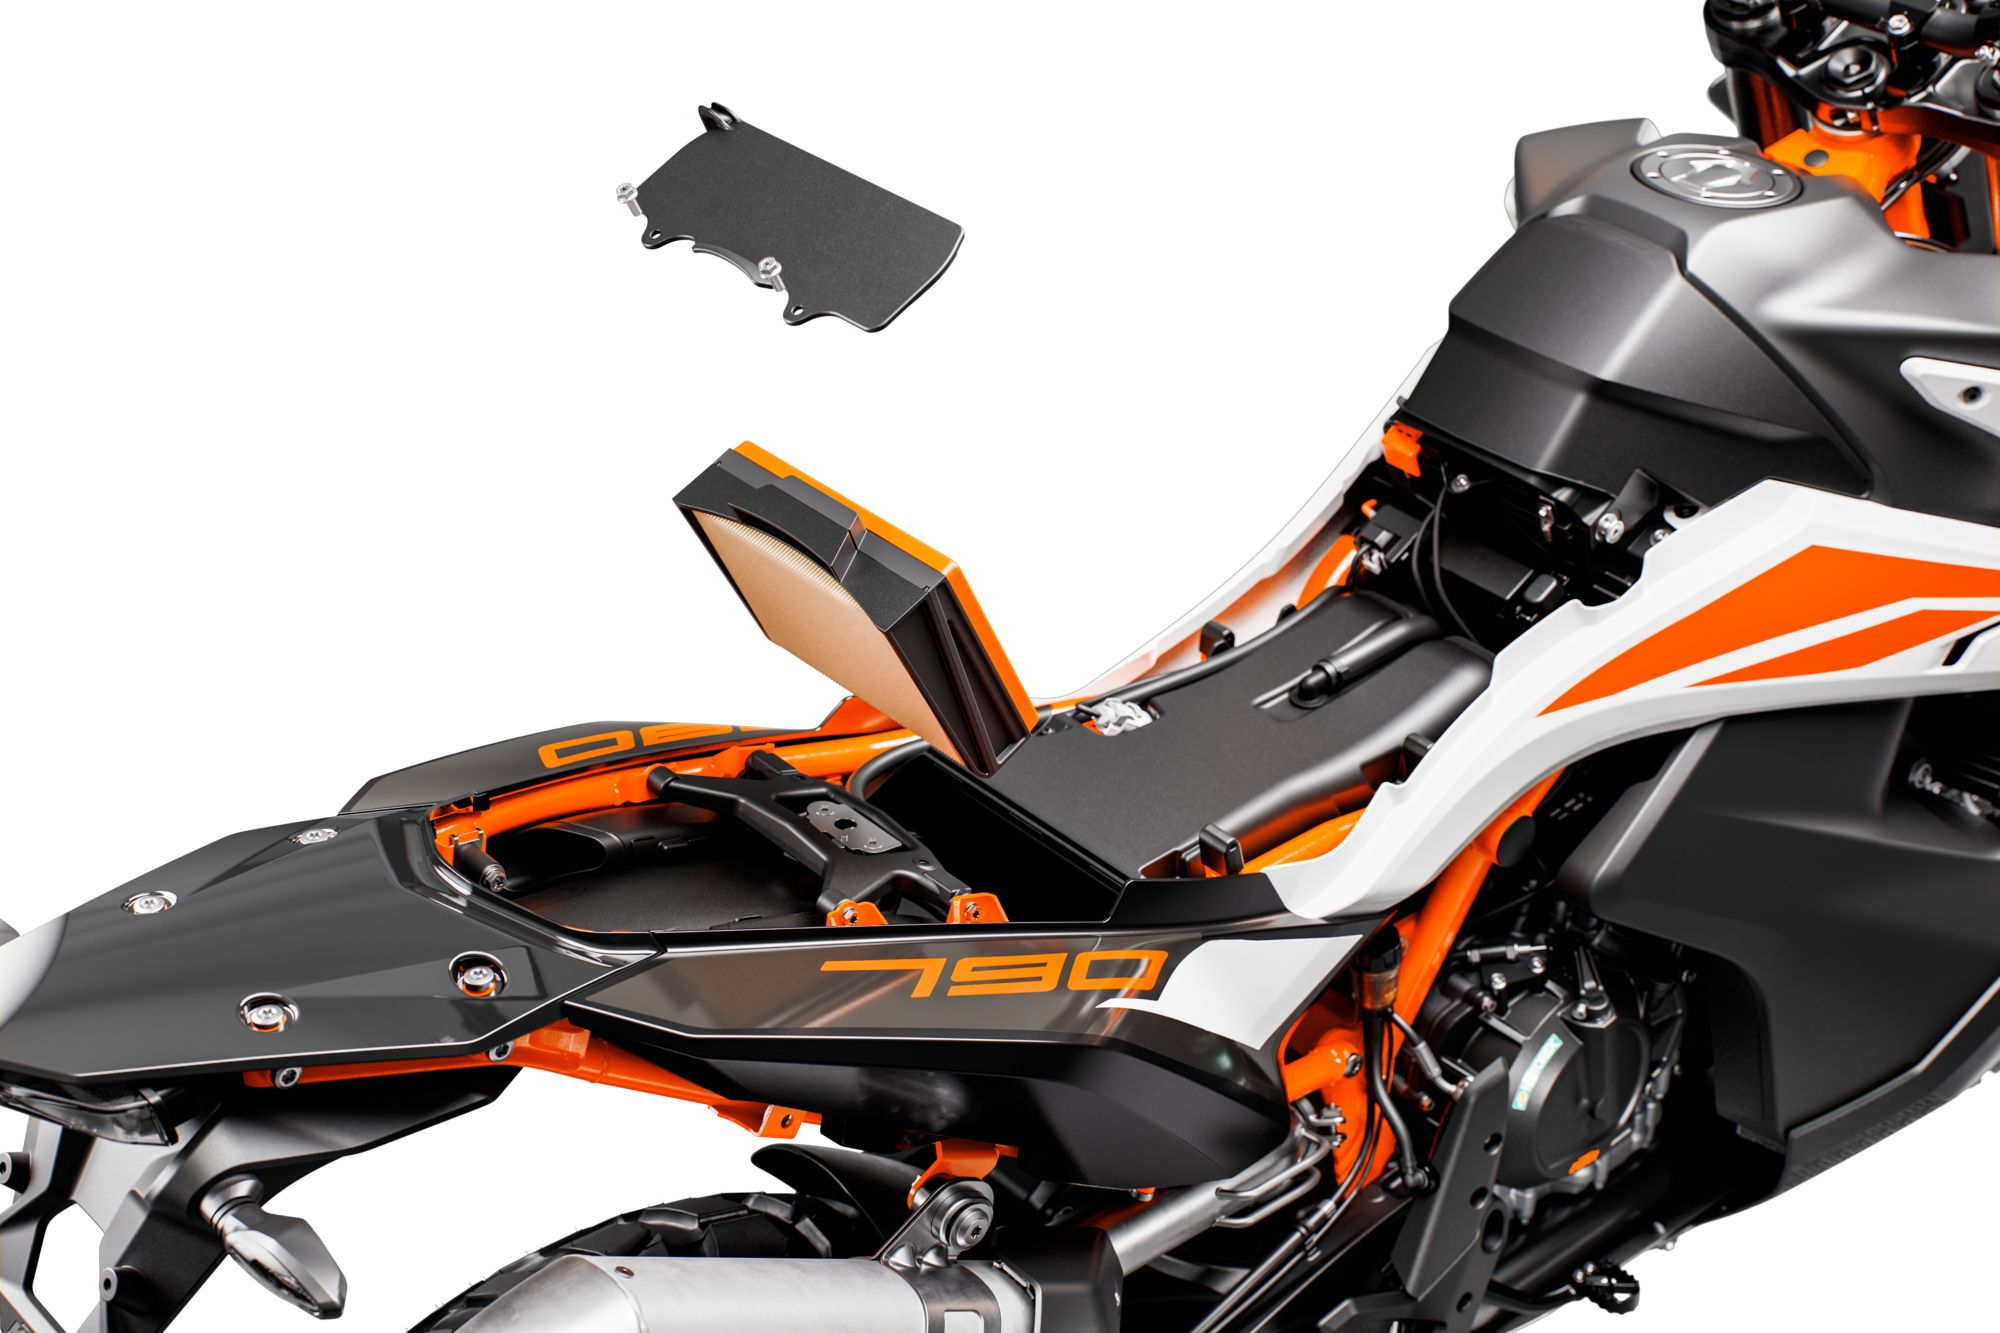 UPSHIFTCHRIS BIRCH AND QUINN CODY TALK ABOUT THE KTM 790 ADVENTURE R